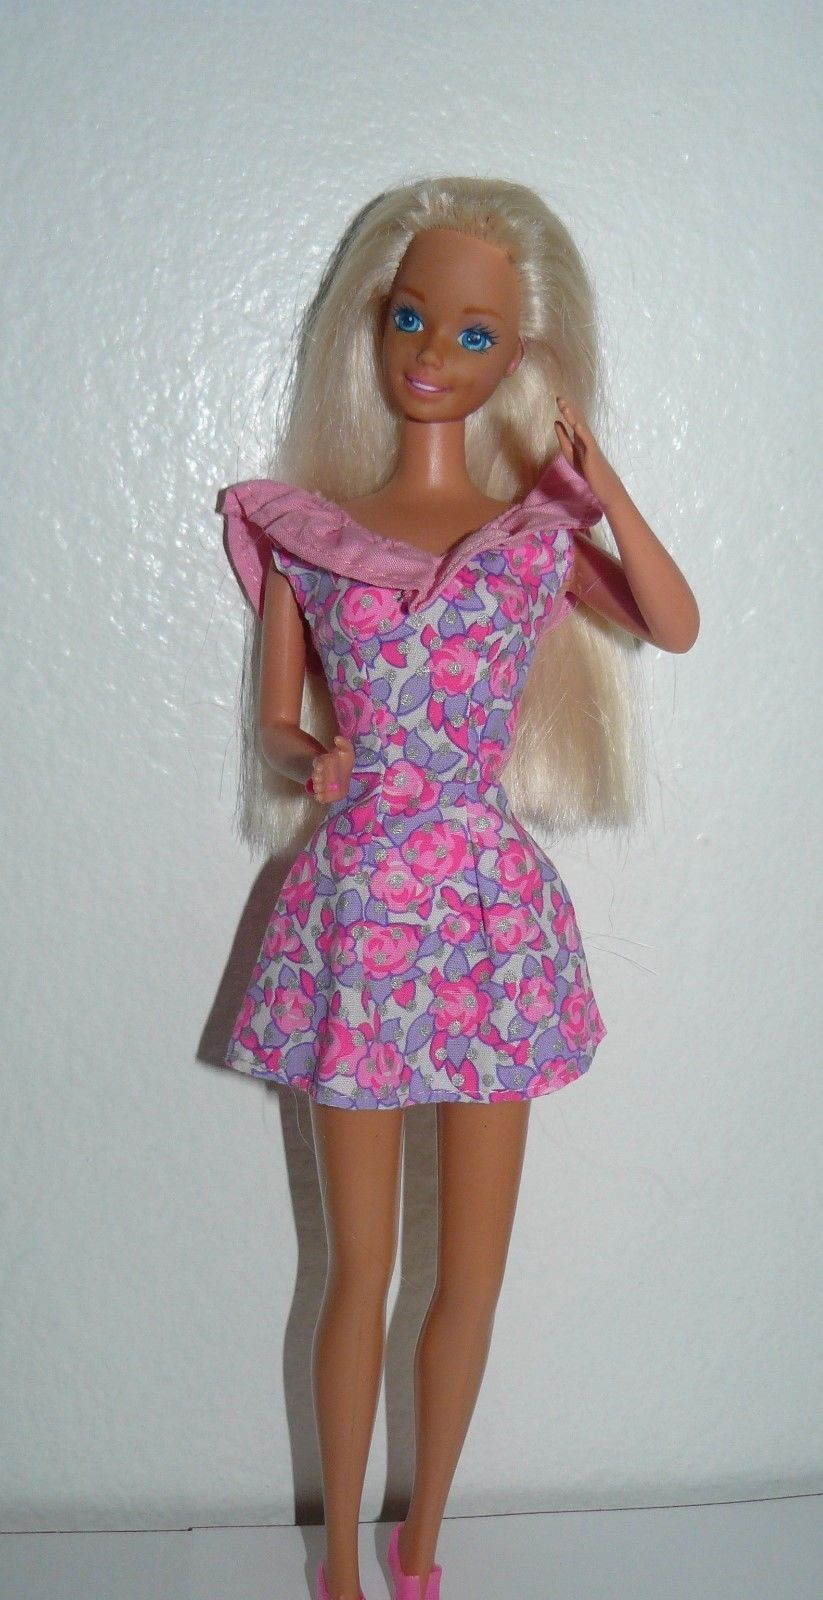 14cba6c904e6 Mattel 1980 s Twist  N Turn Barbie Doll blue and 50 similar items. S l1600